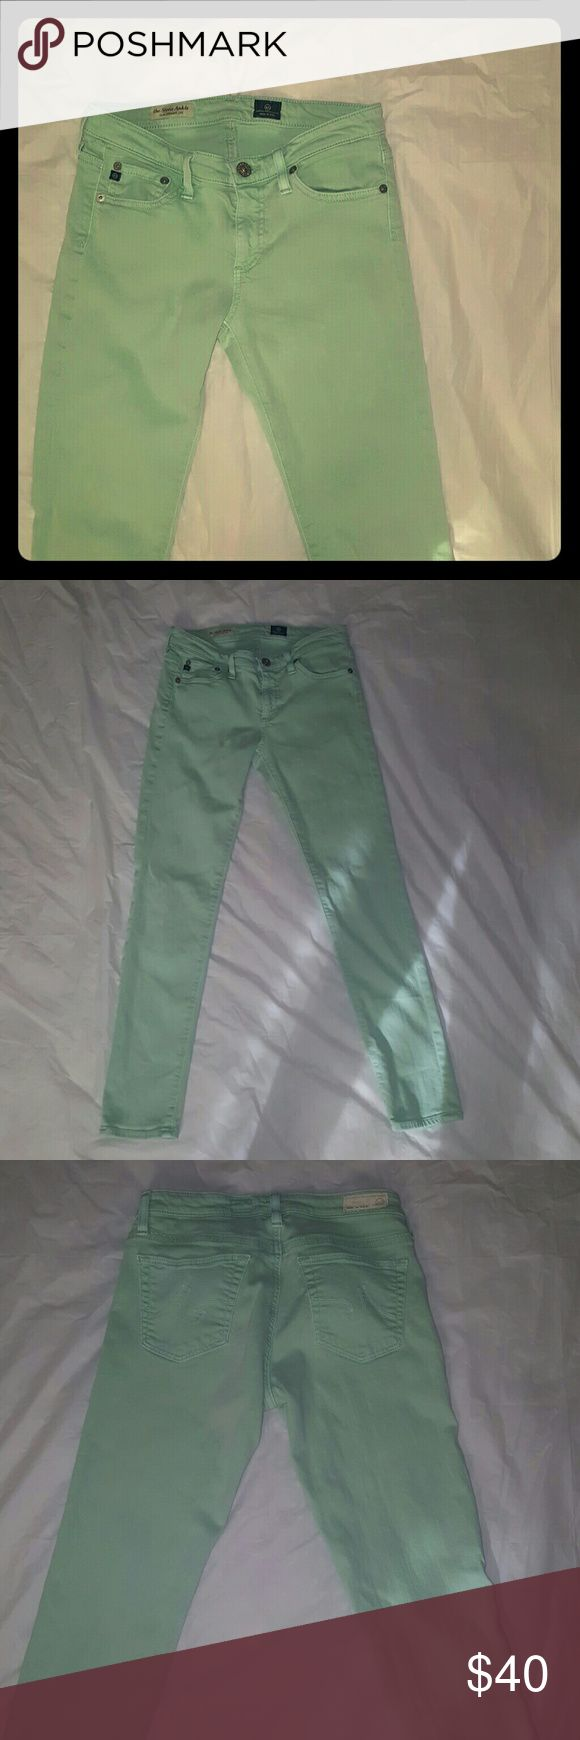 AG Mint The Stevie Ankle No holes or stains. Mint Green. Slim, straight leg. Size 26R. AG Adriano Goldschmied Jeans Ankle & Cropped